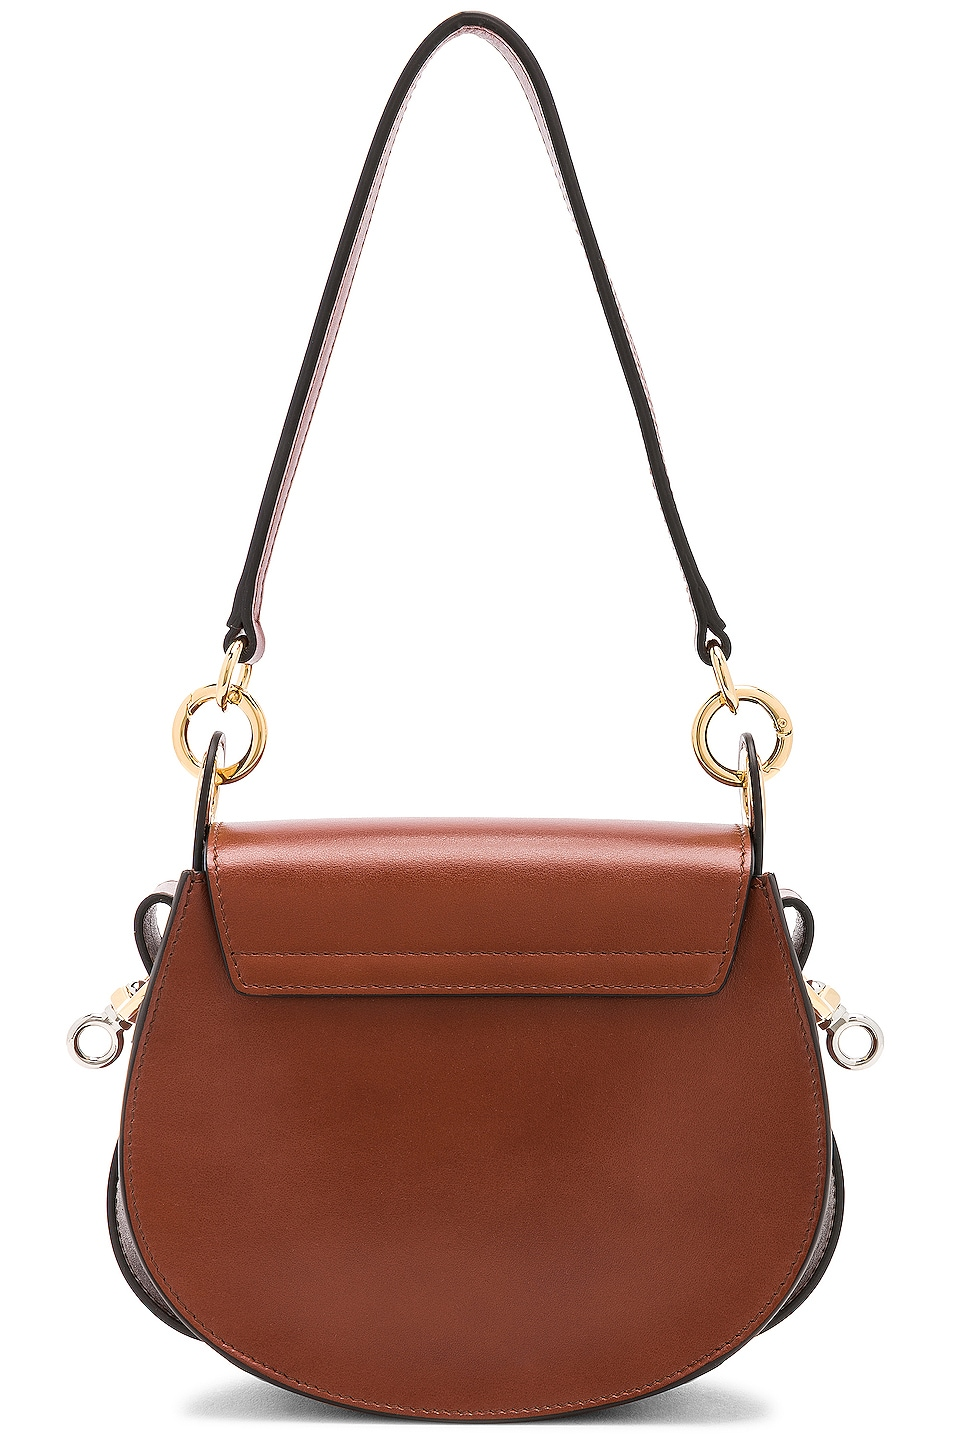 Image 3 of Chloe Small Tess Shiny Calfskin Shoulder Bag in Sepia Brown